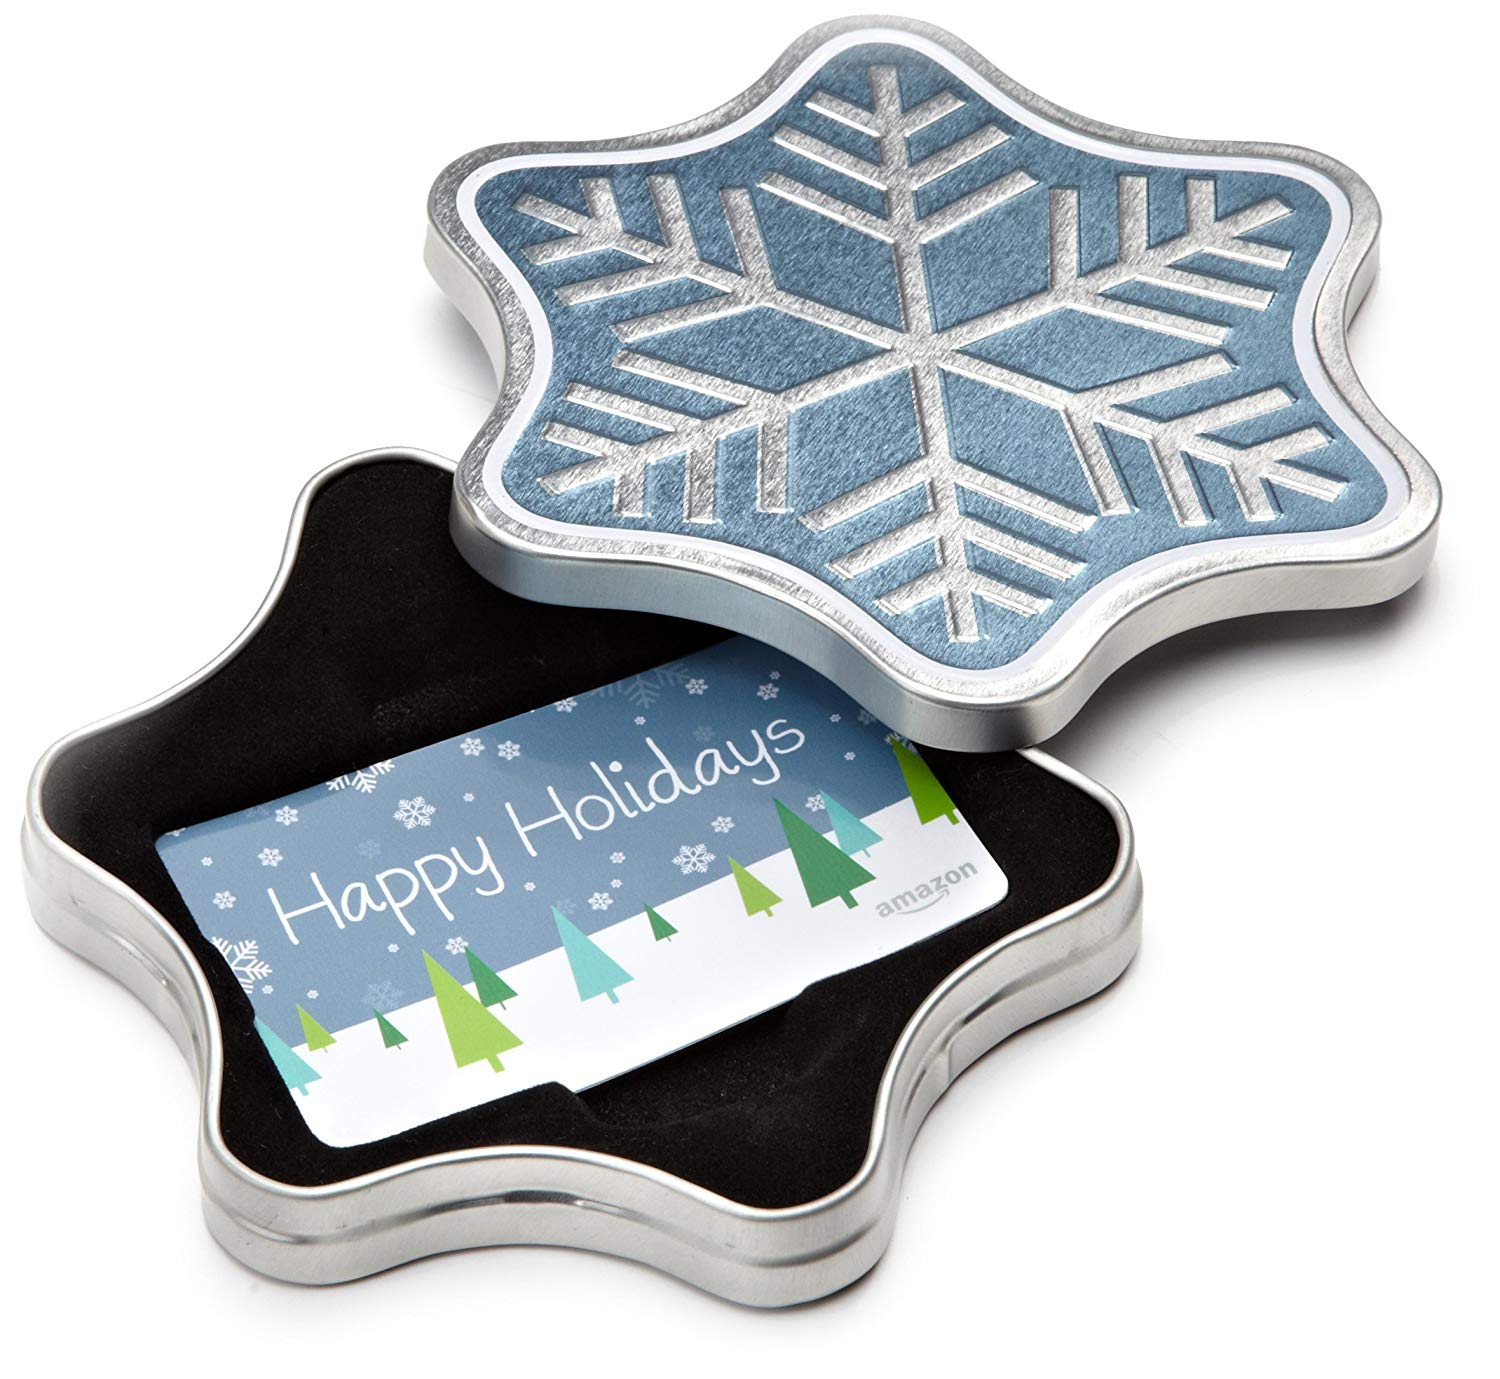 A gift card in a decorative snowflake tin.